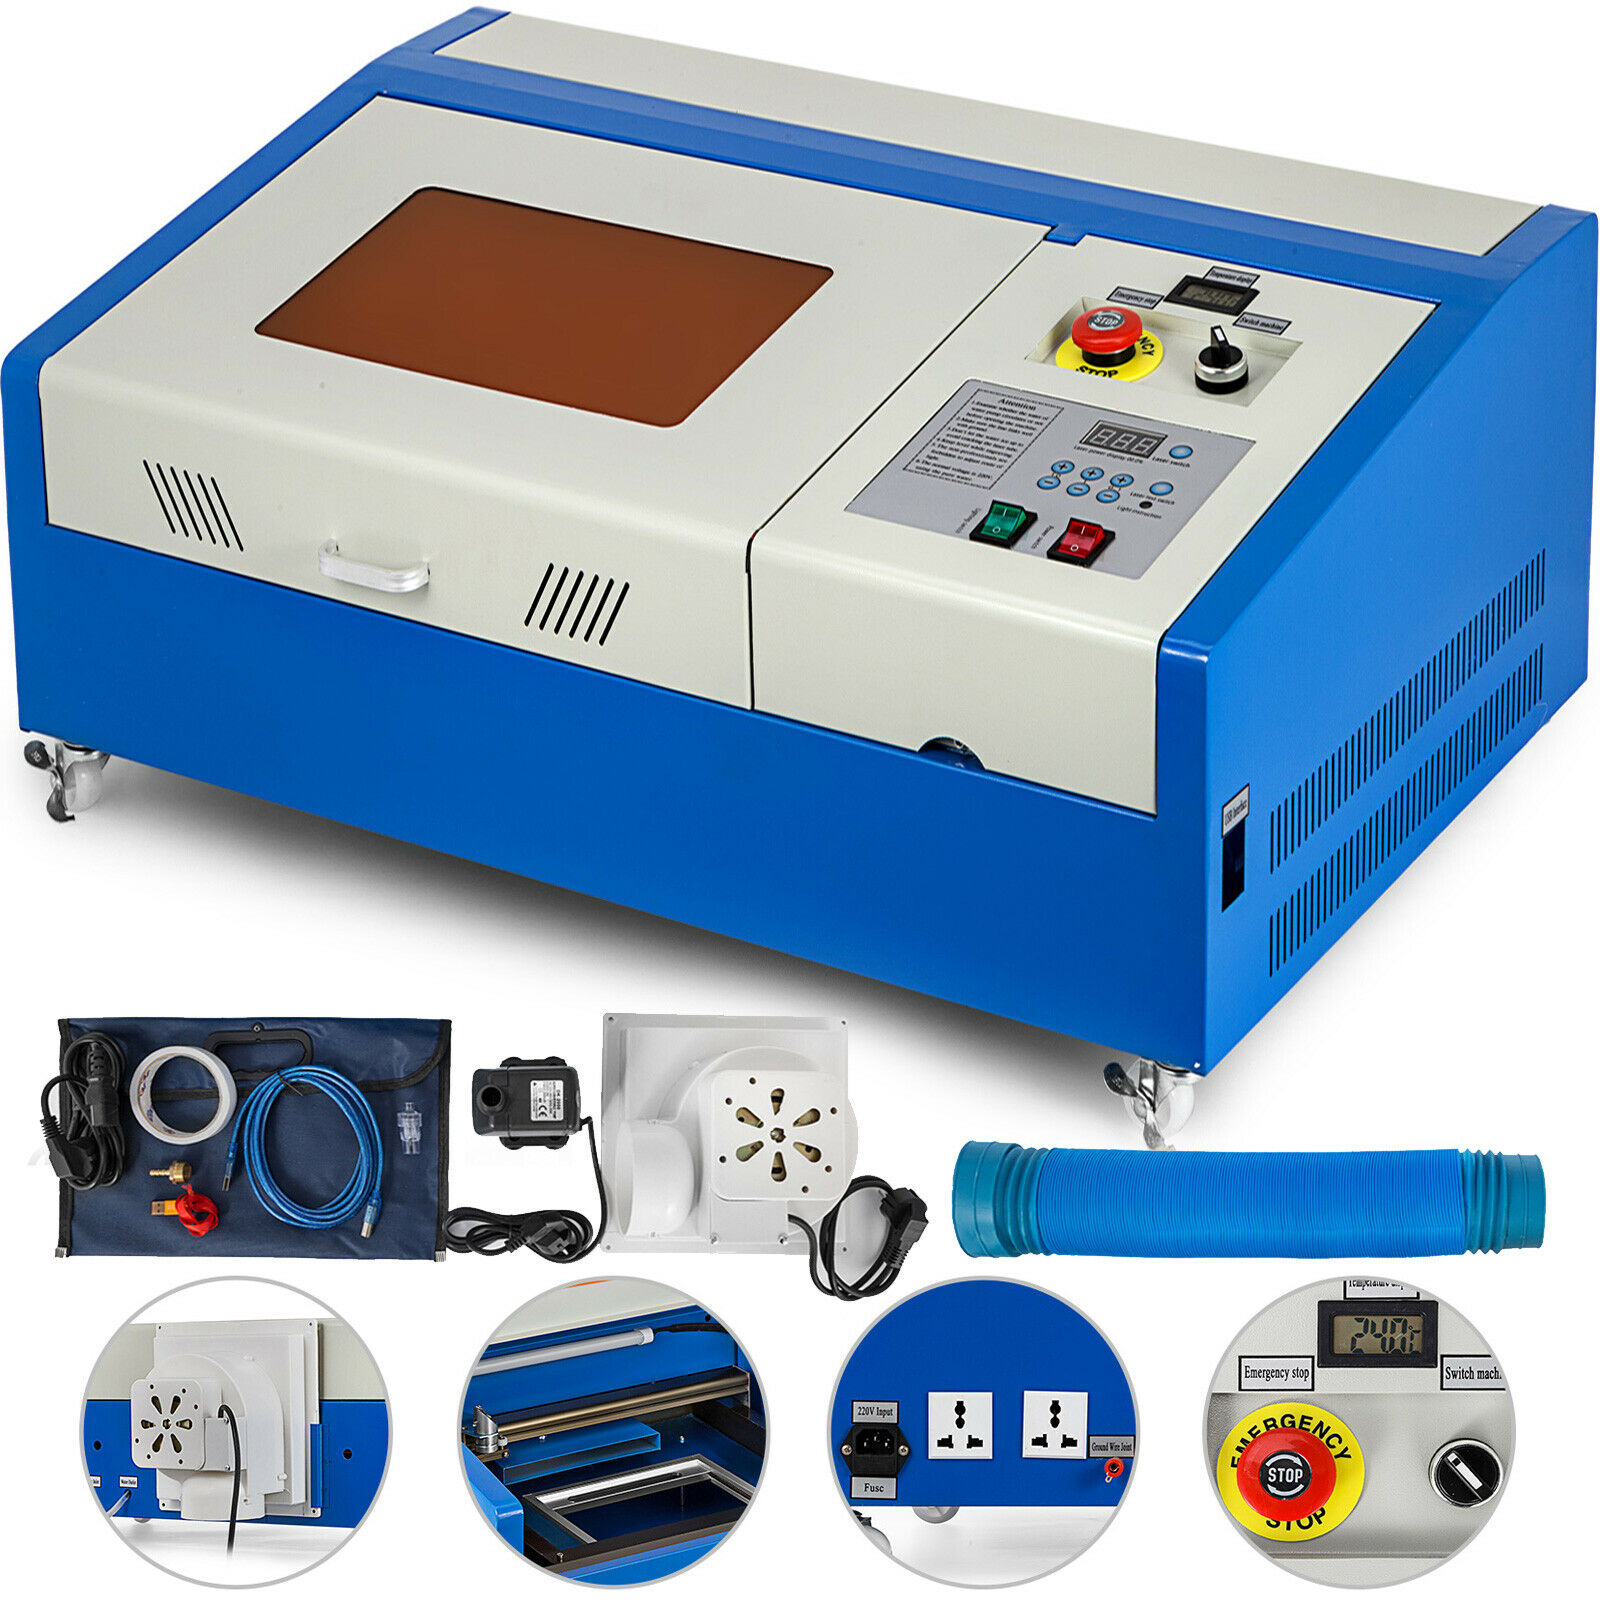 Poland Warehouse 40W CO2 USB Laser Engraving Cutting Machine Engraver Wood Cutter